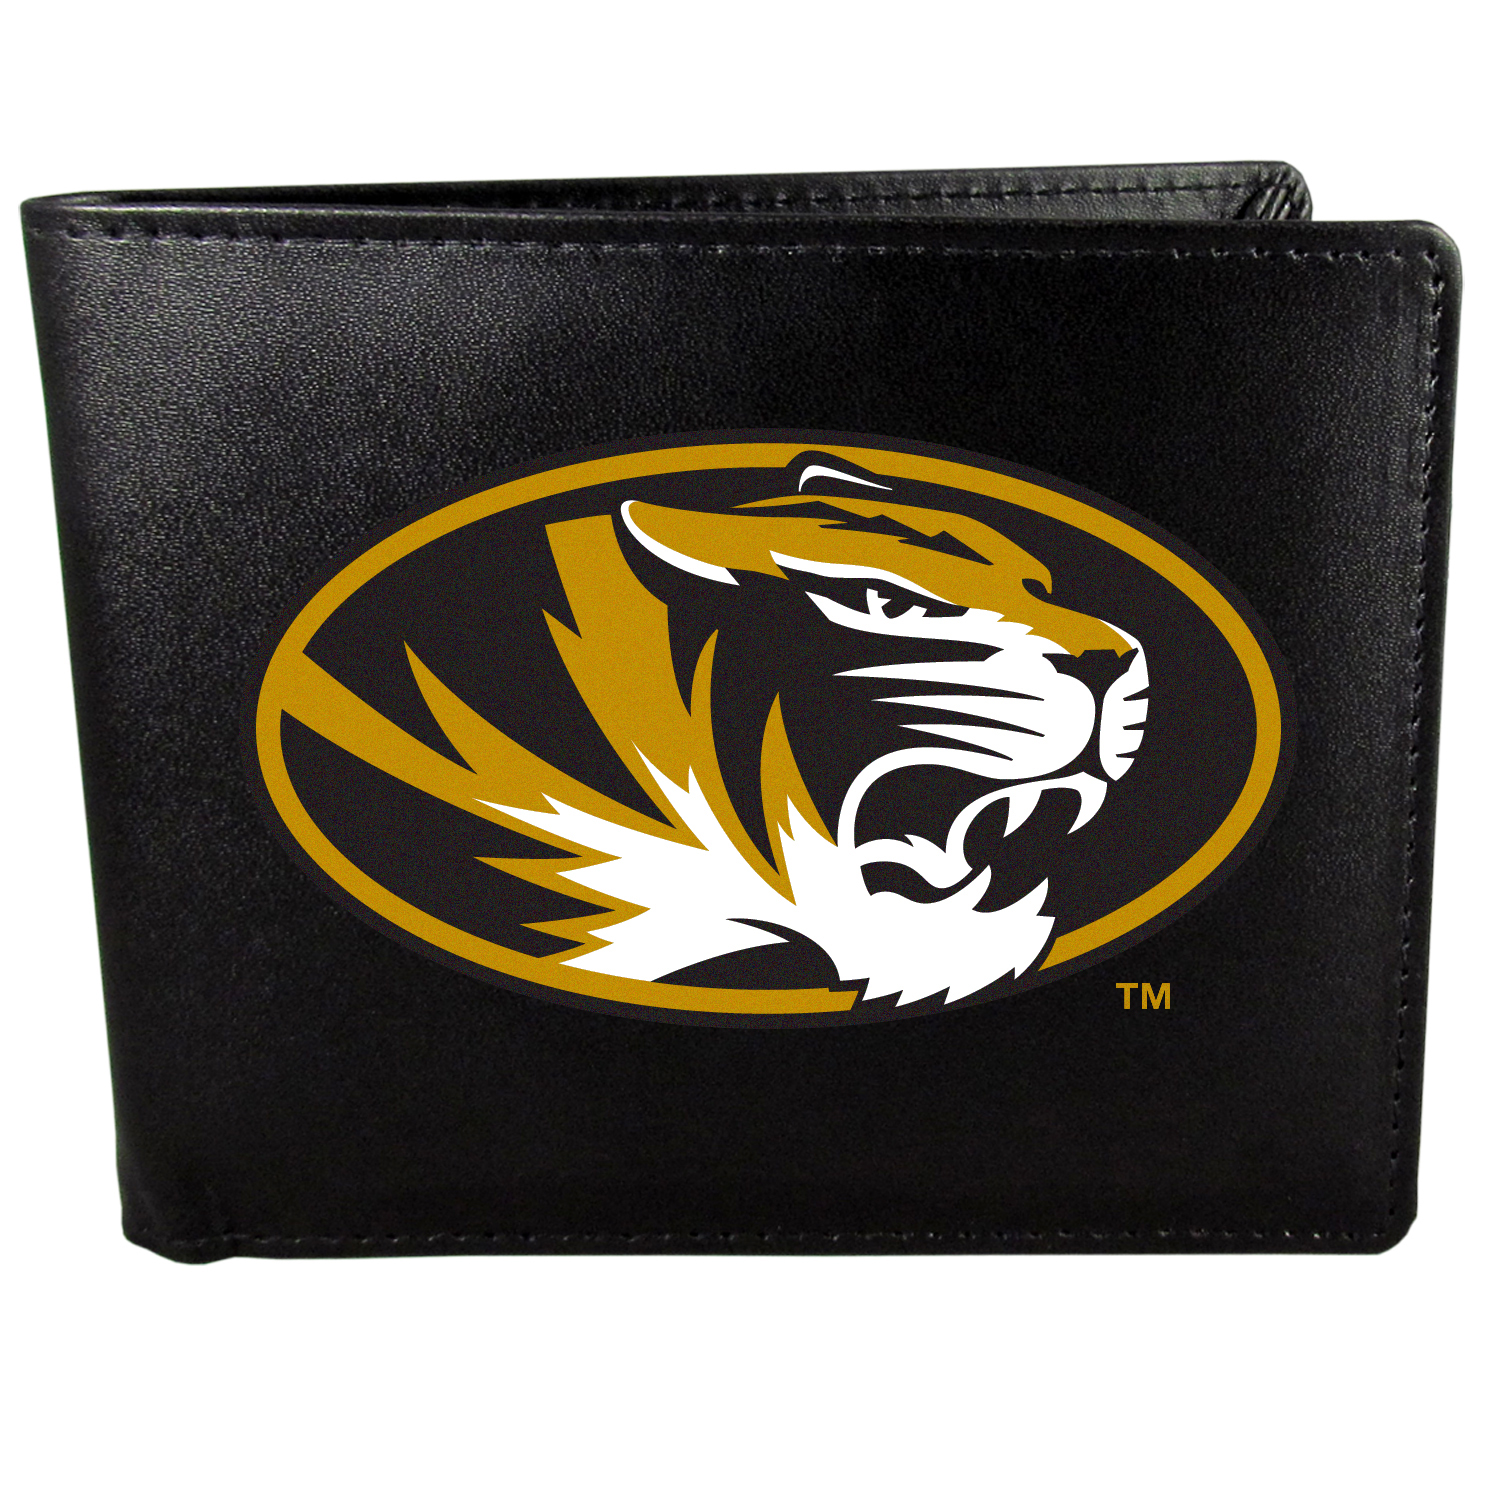 Missouri Tigers Bi-fold Wallet Large Logo - Sports fans do not have to sacrifice style with this classic bi-fold wallet that sports the Missouri Tigers extra large logo. This men's fashion accessory has a leather grain look and expert craftmanship for a quality wallet at a great price. The wallet features inner credit card slots, windowed ID slot and a large billfold pocket. The front of the wallet features a printed team logo.